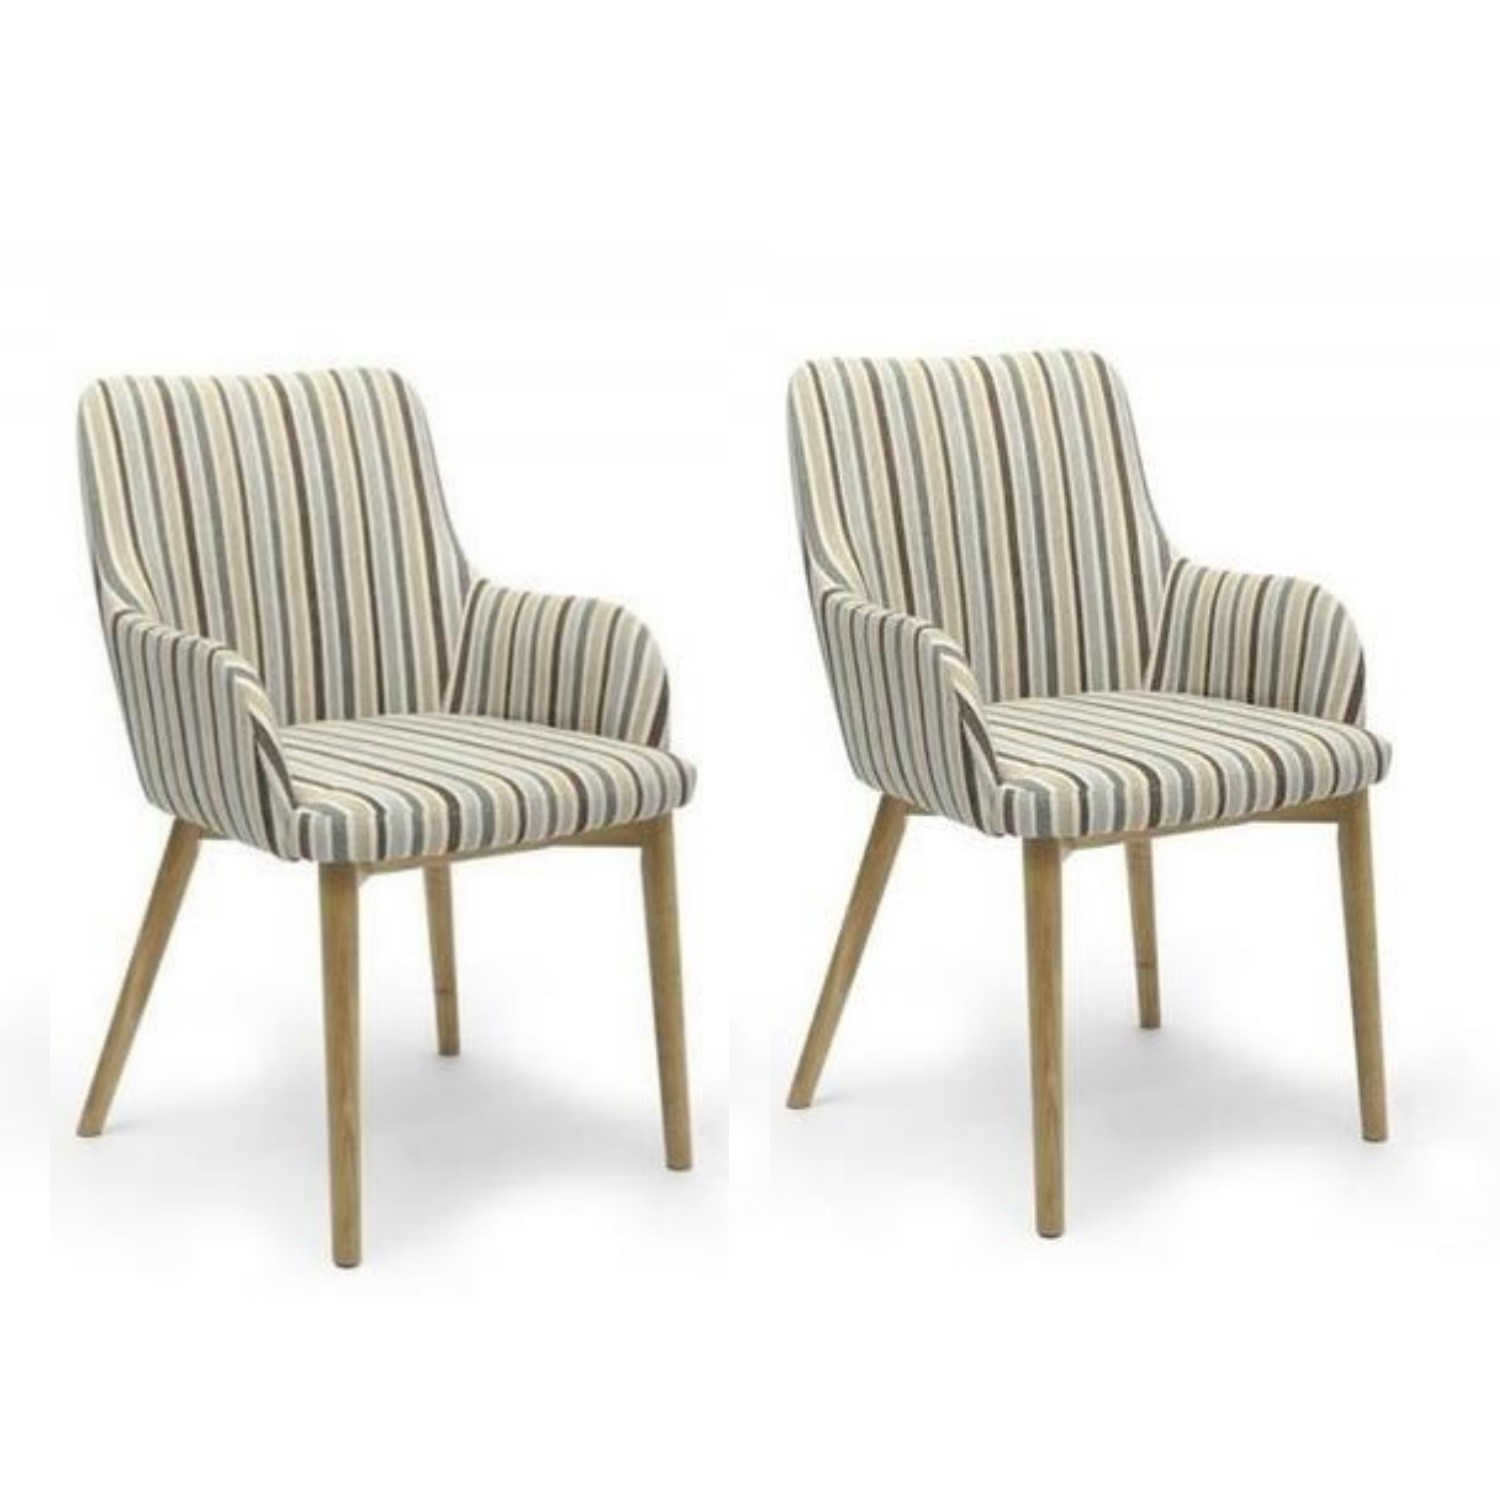 Swell Sidcup Pair Of Duck Egg Blue Stripe Dining Chairs Cjindustries Chair Design For Home Cjindustriesco